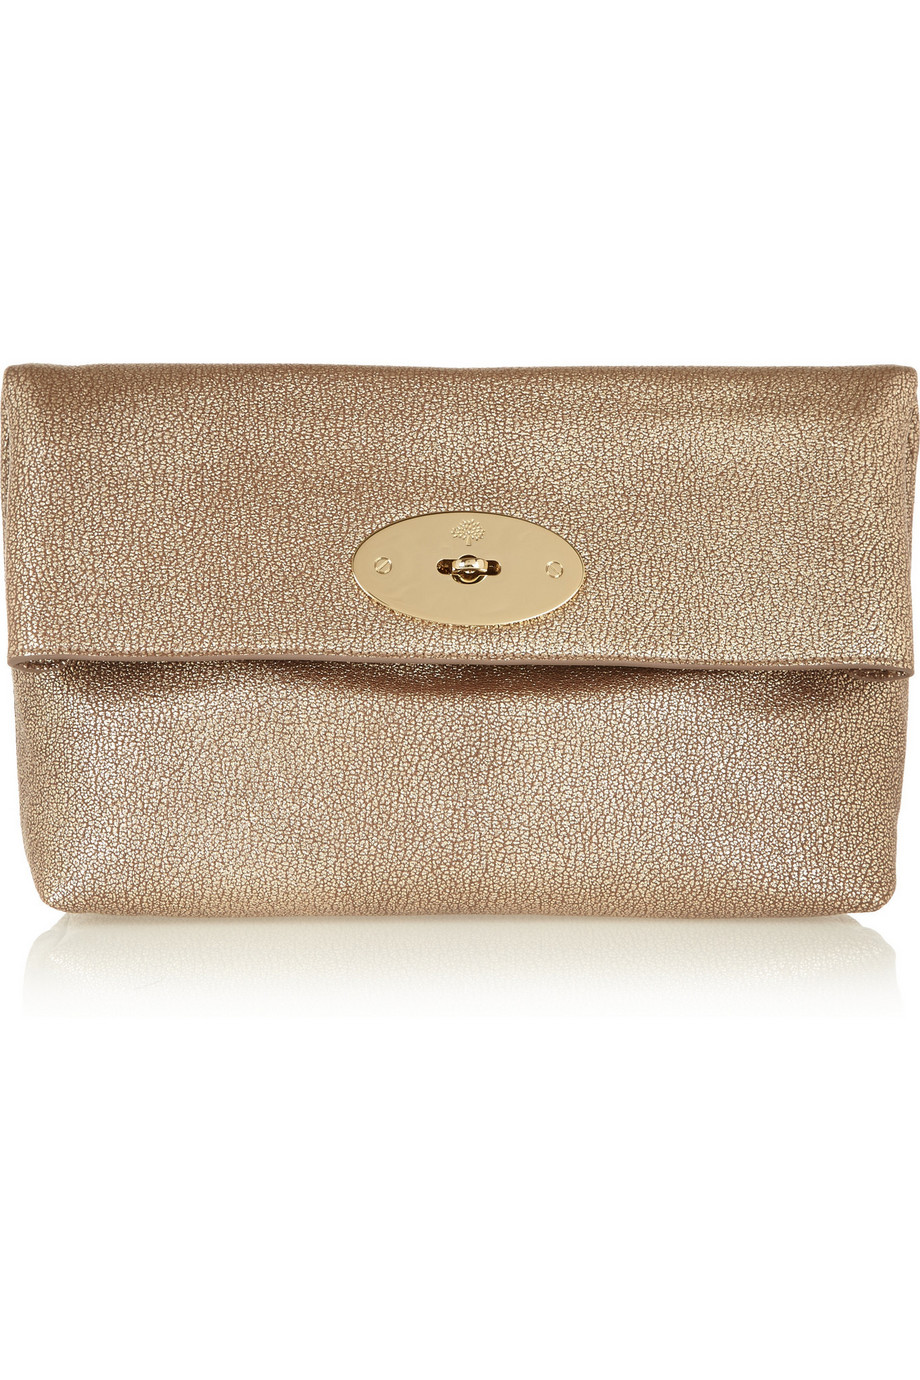 Mulberry Clemmie Metallic Textured-Leather Clutch, Gold, Women's